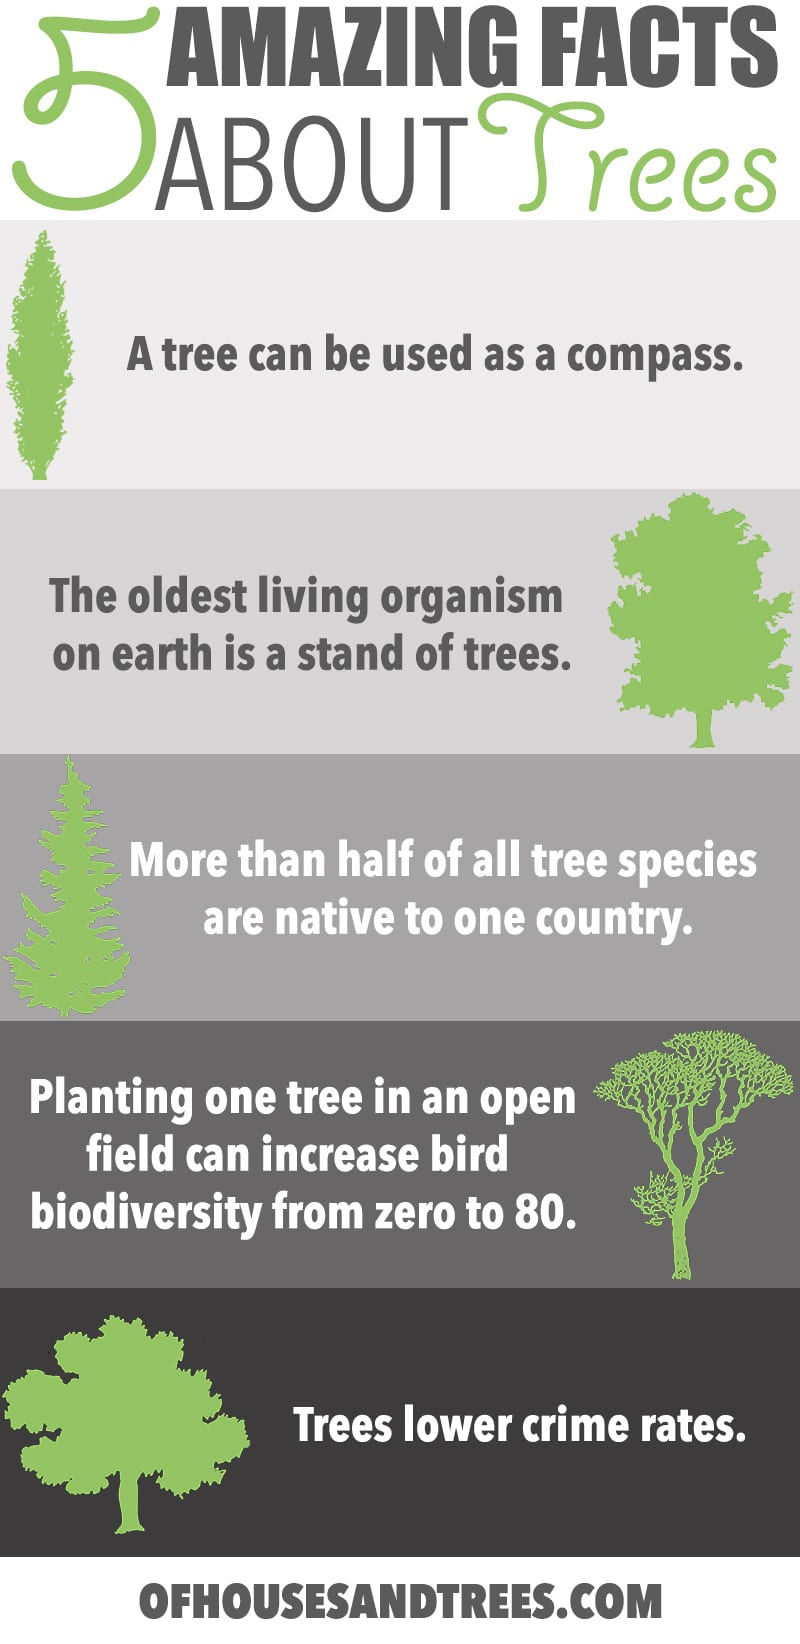 Amazing Facts About Trees   Five amazing facts about trees! Did you know a tree can be used as a compass, fight crime and increase bird biodiversity from zero to 80 species?